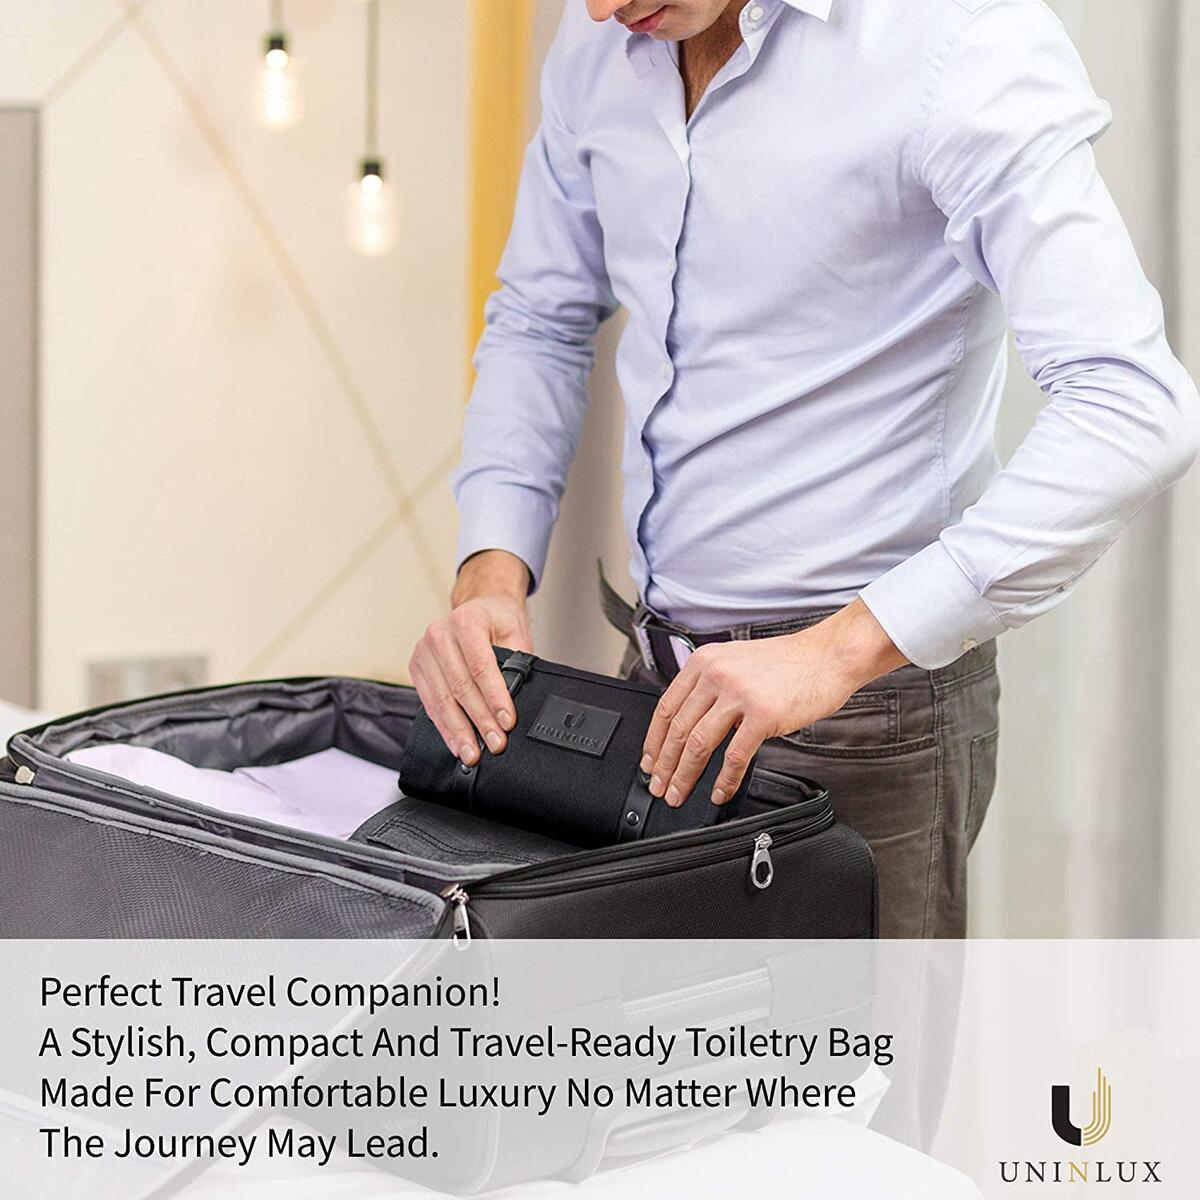 Leather Toiletry Bag for Men - Men's Hanging Toiletry Bag with Waterproof Lining | Sleek Mens Leather Travel Kit Bag | Black Leather Dopp Bag with Storage | Travel Gift for Men